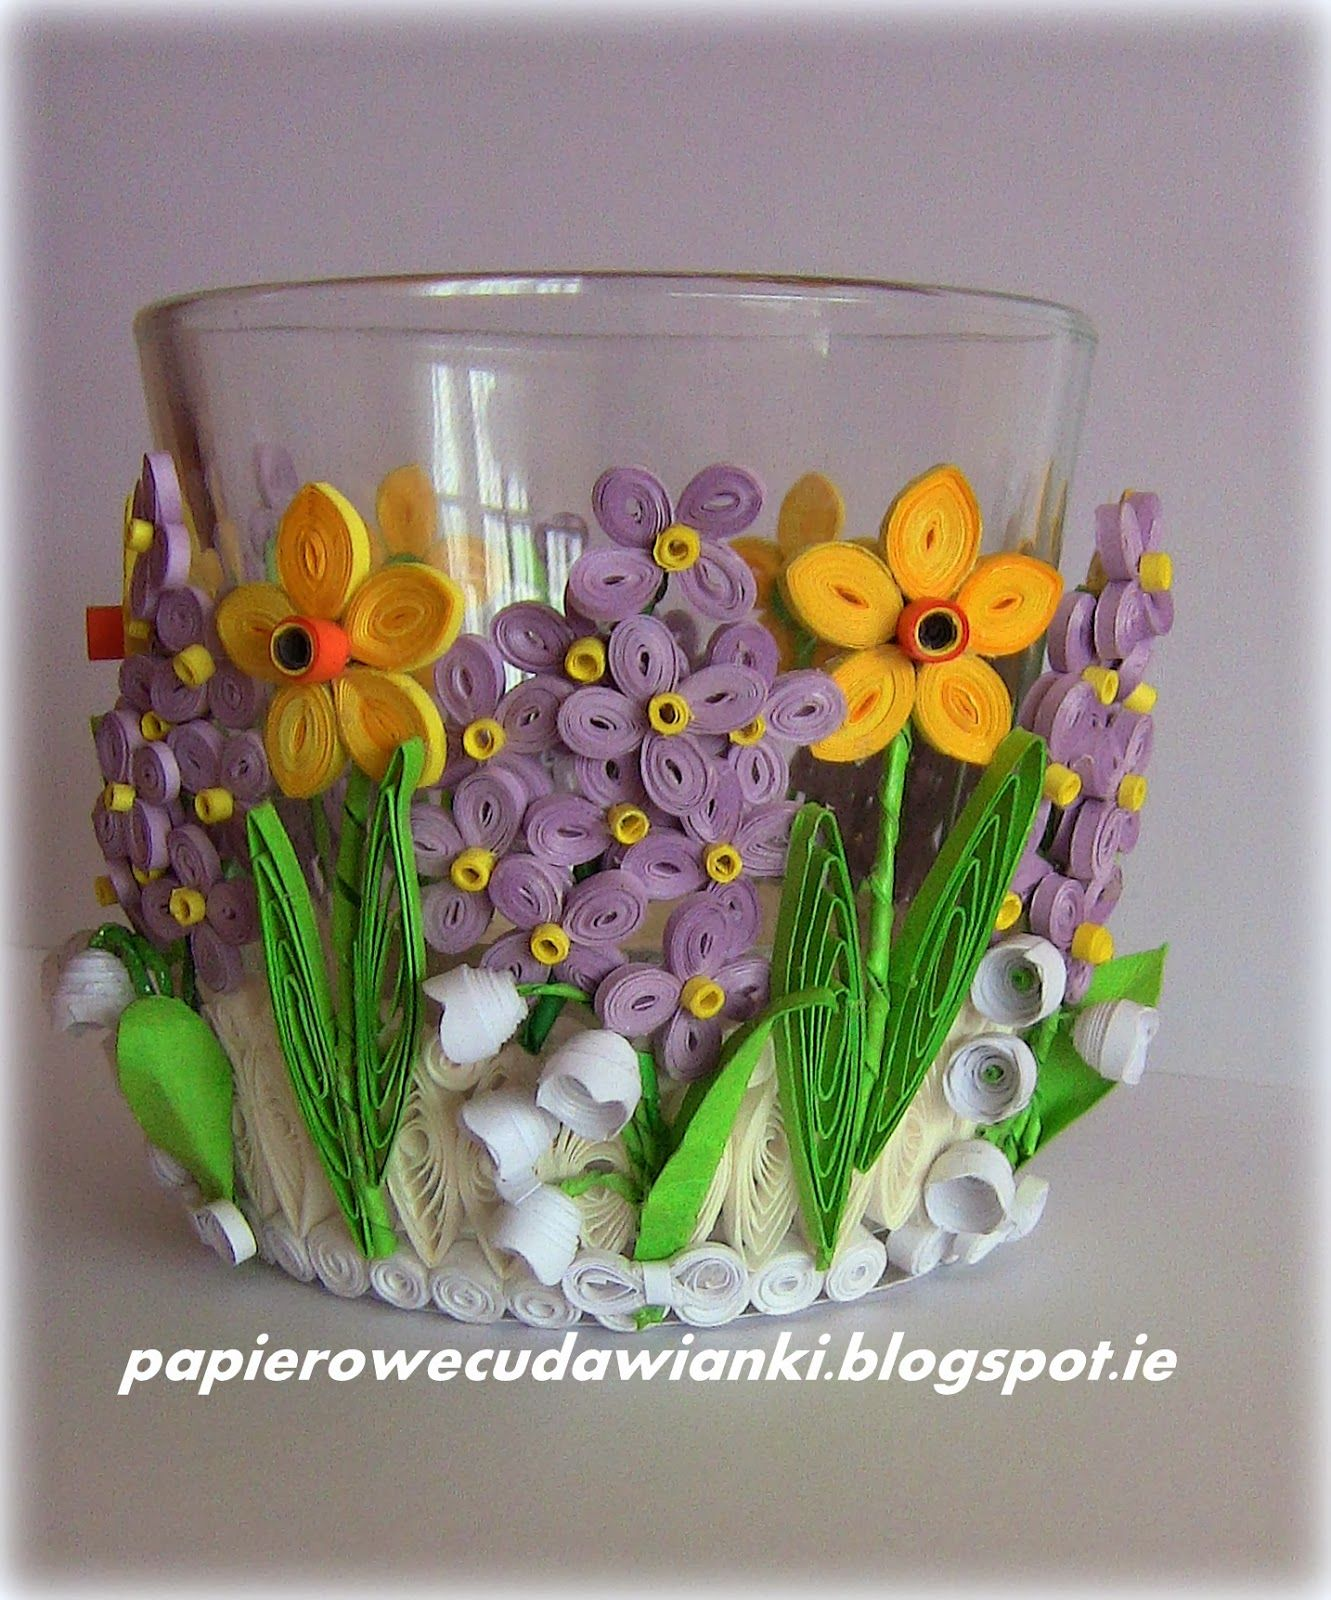 Quilling Design On Glass Can Be Turned Into Vase